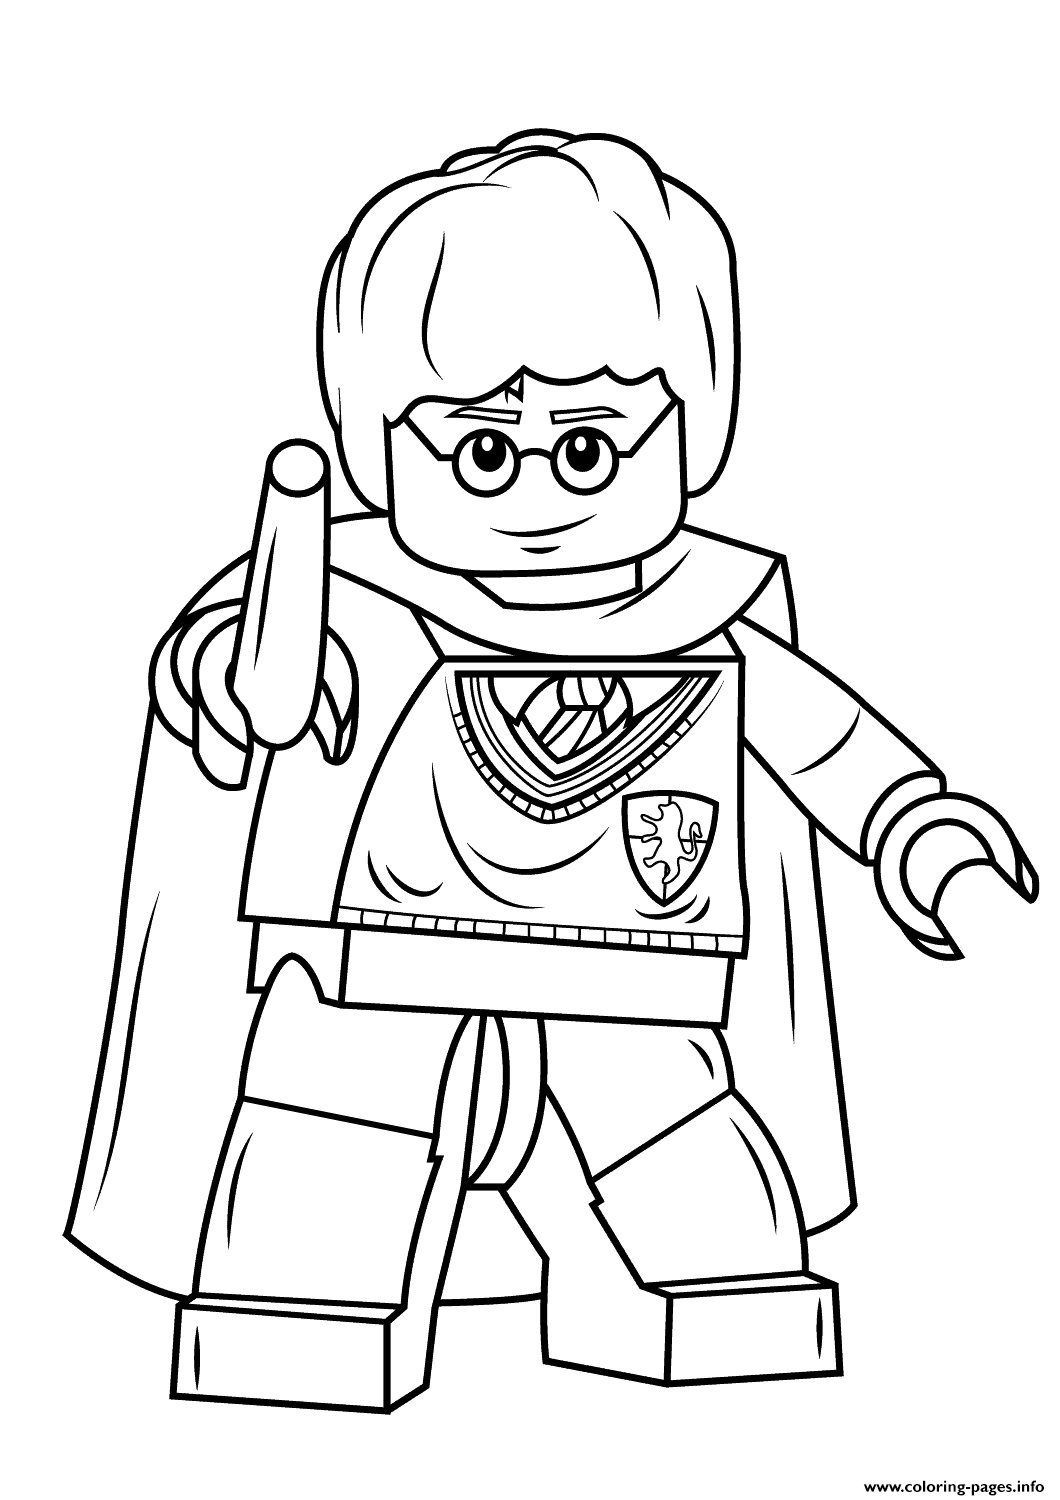 coloring pages harry potter lego kids n funcom 8 coloring pages of lego harry potter lego harry potter pages coloring